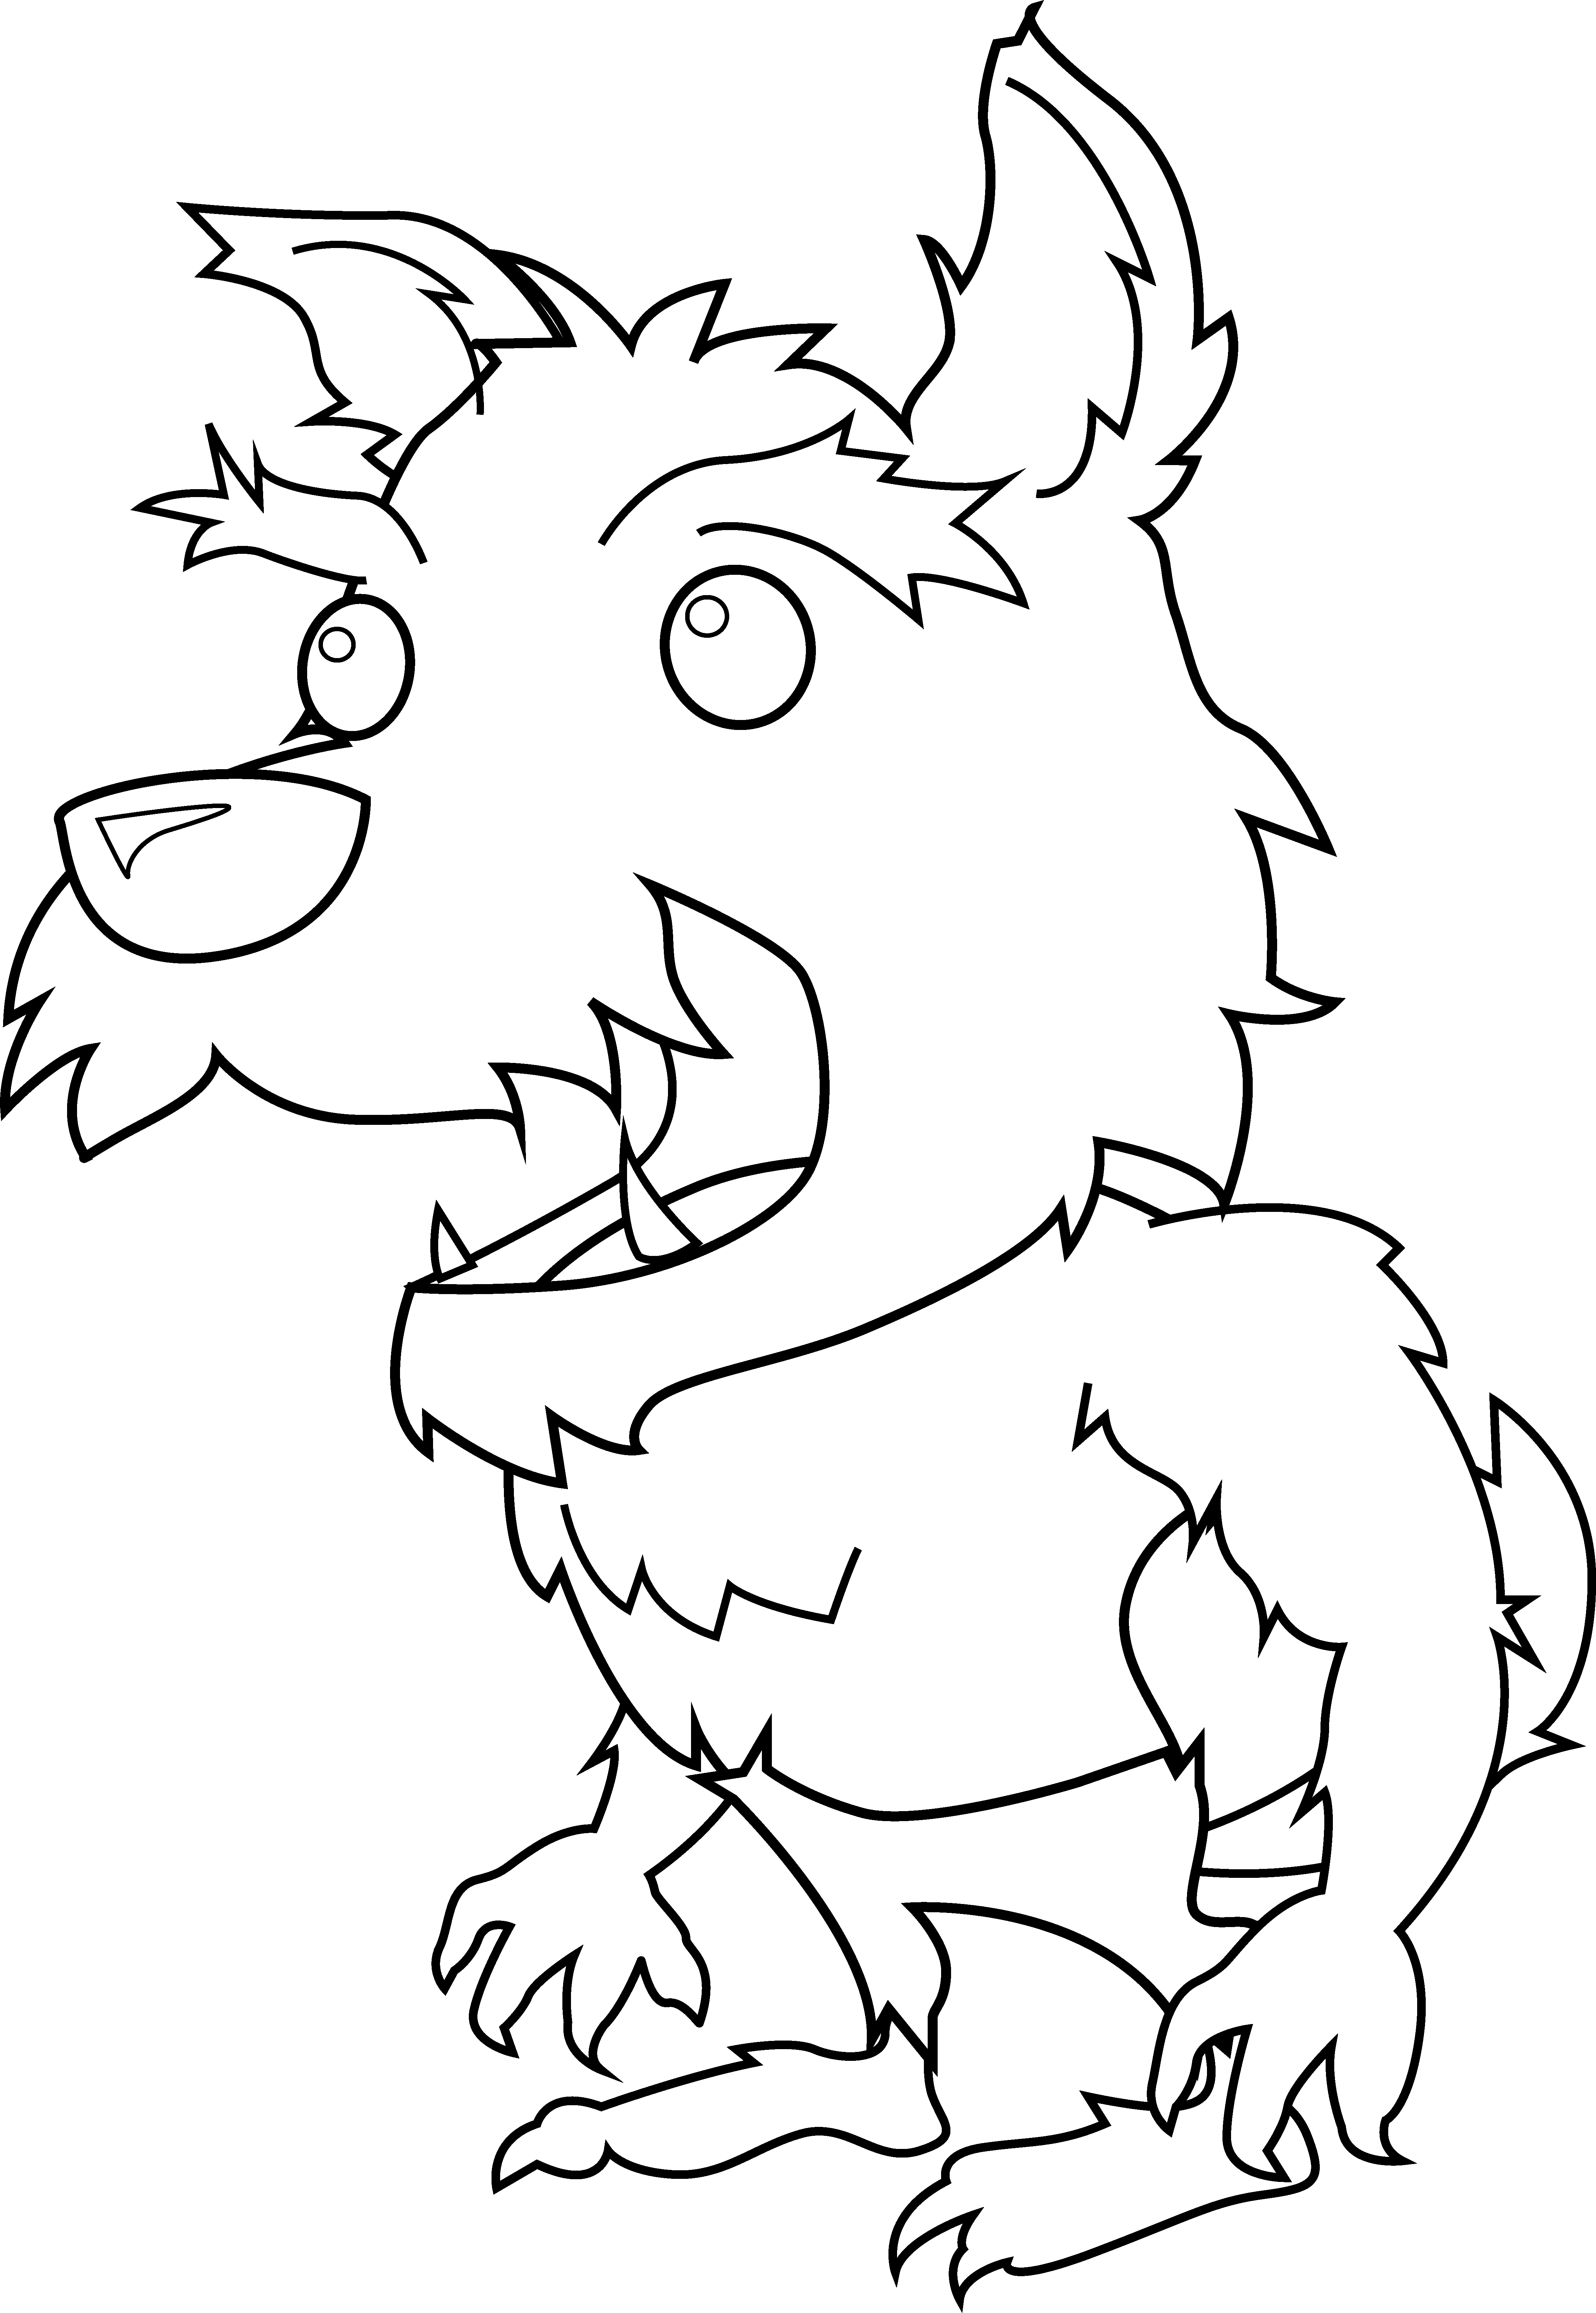 Magician clipart folklore. Scary little werewolf coloring